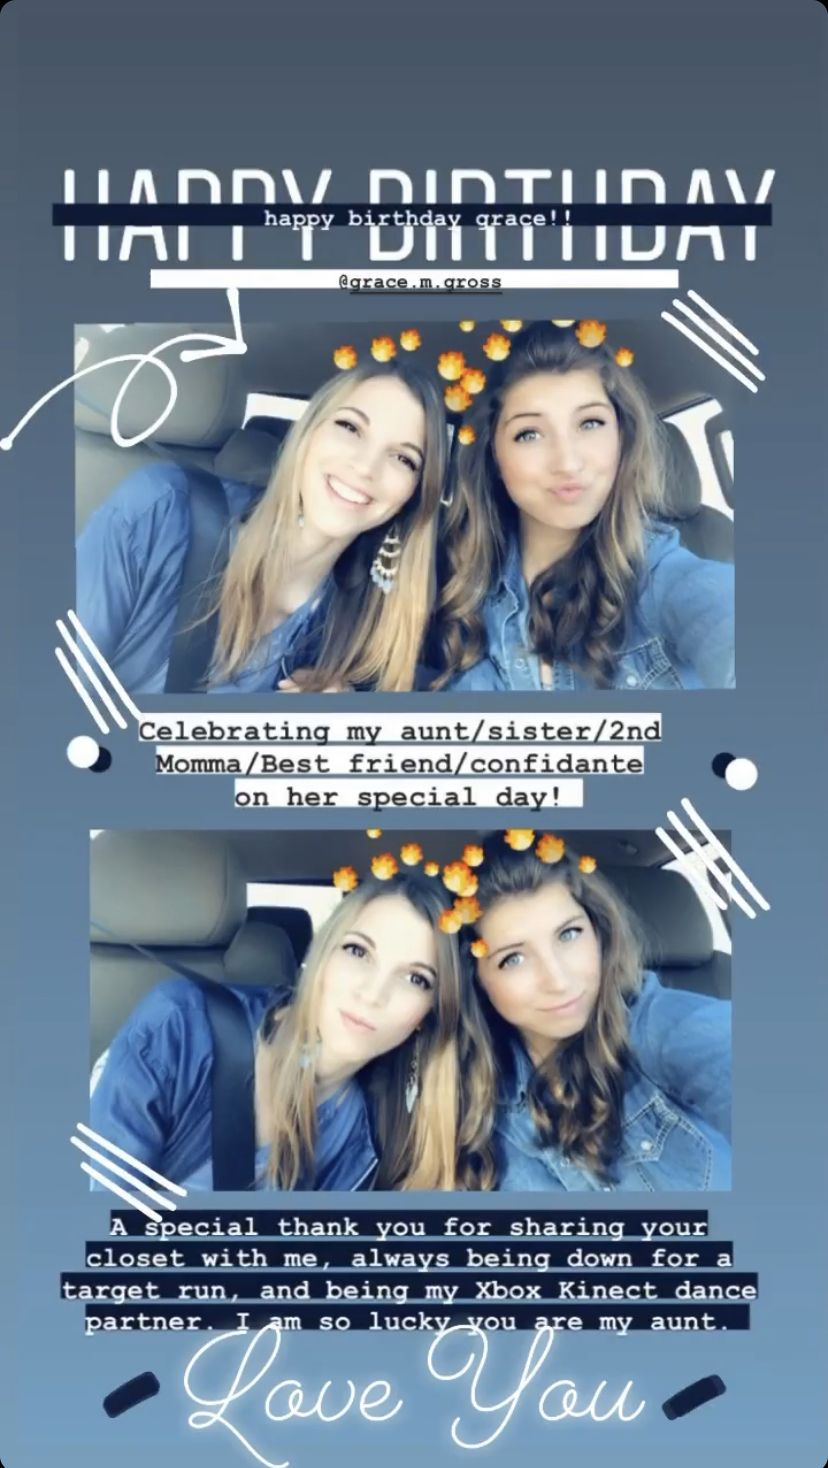 Instagram Story Ideas Birthday Post Instagram Happy Birthday Best Friend Instagram Story Ideas I want to make you feel special and let you know how much i love you. instagram story ideas birthday post